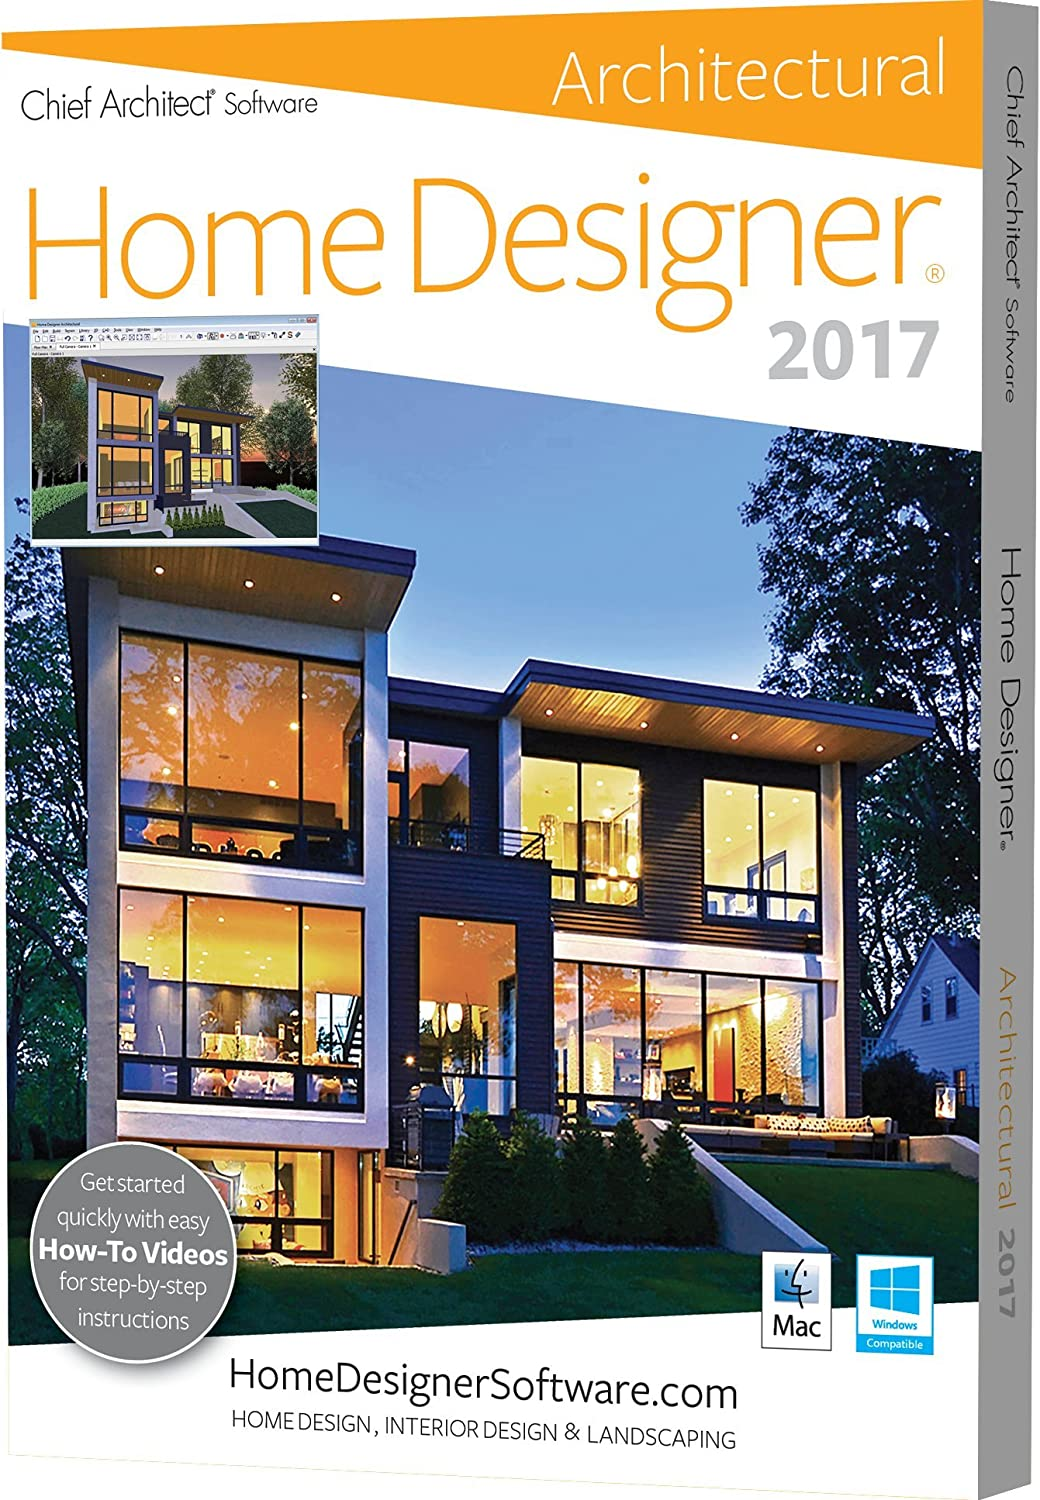 Chief Architect Home Designer Pro 2017: PC-Mac: - Amazon.ca on designer shirts, designer cabins, designer flats, designer chairs, designer recliners, designer gloves, designer men suits,